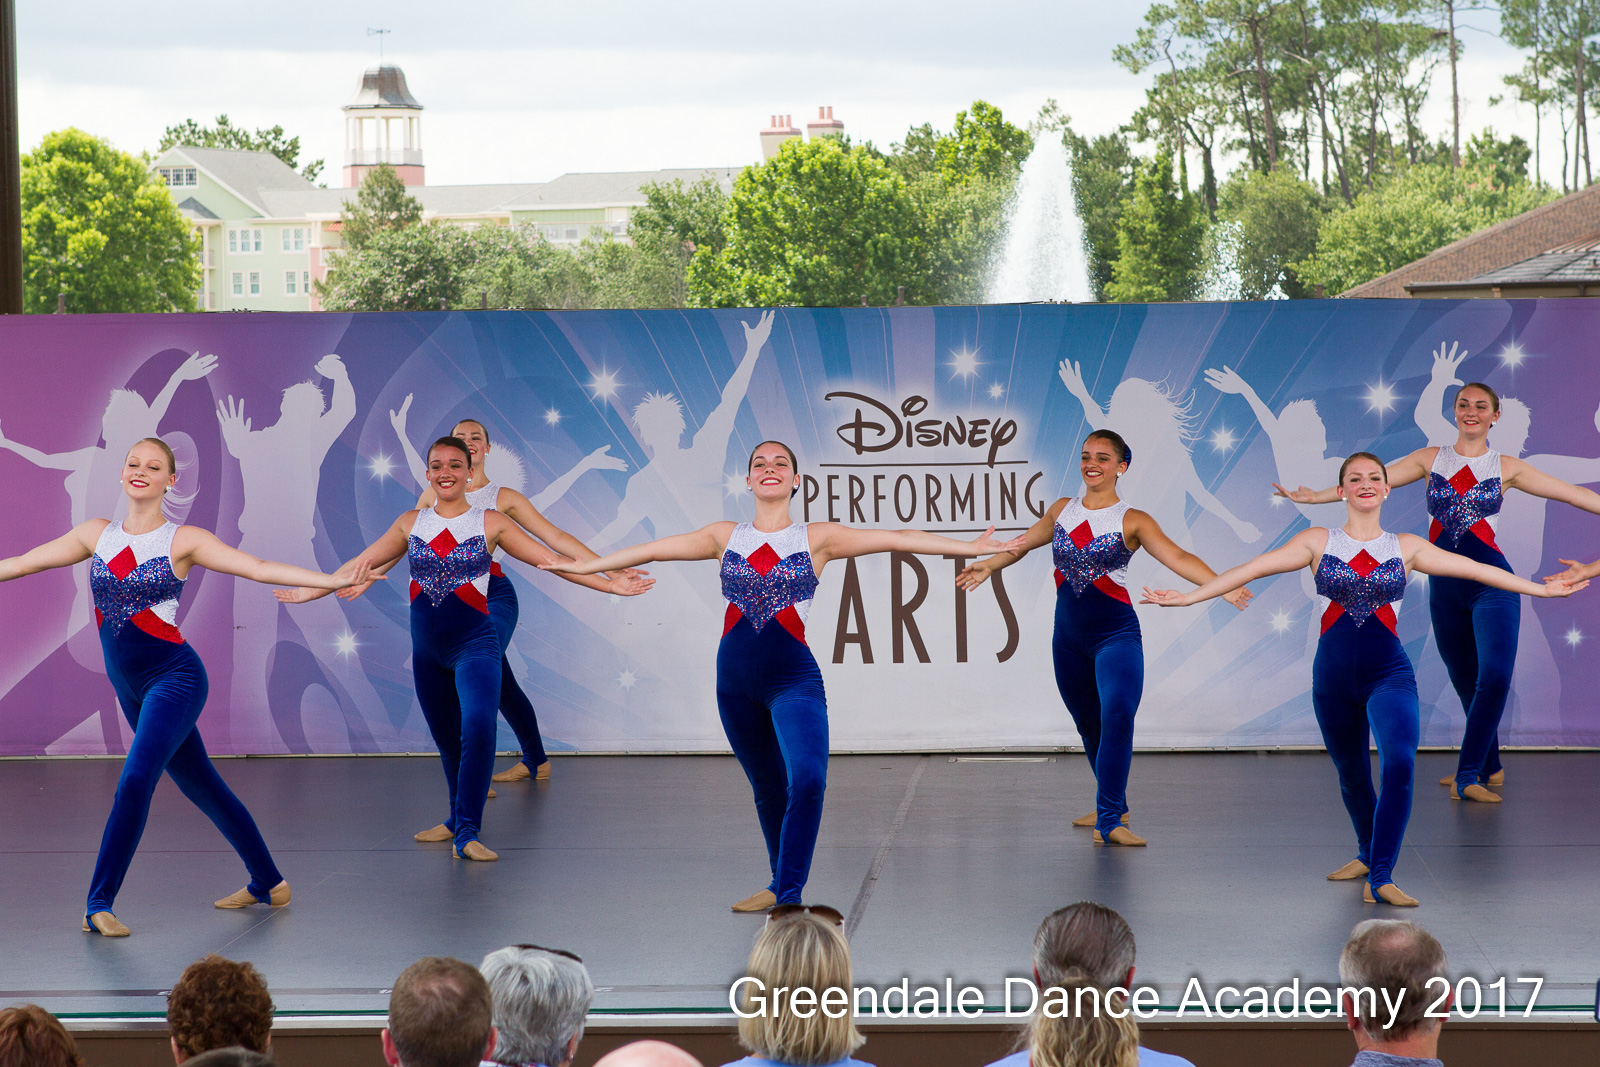 Greendale Dance Academy Dancing in Disney Performing Arts